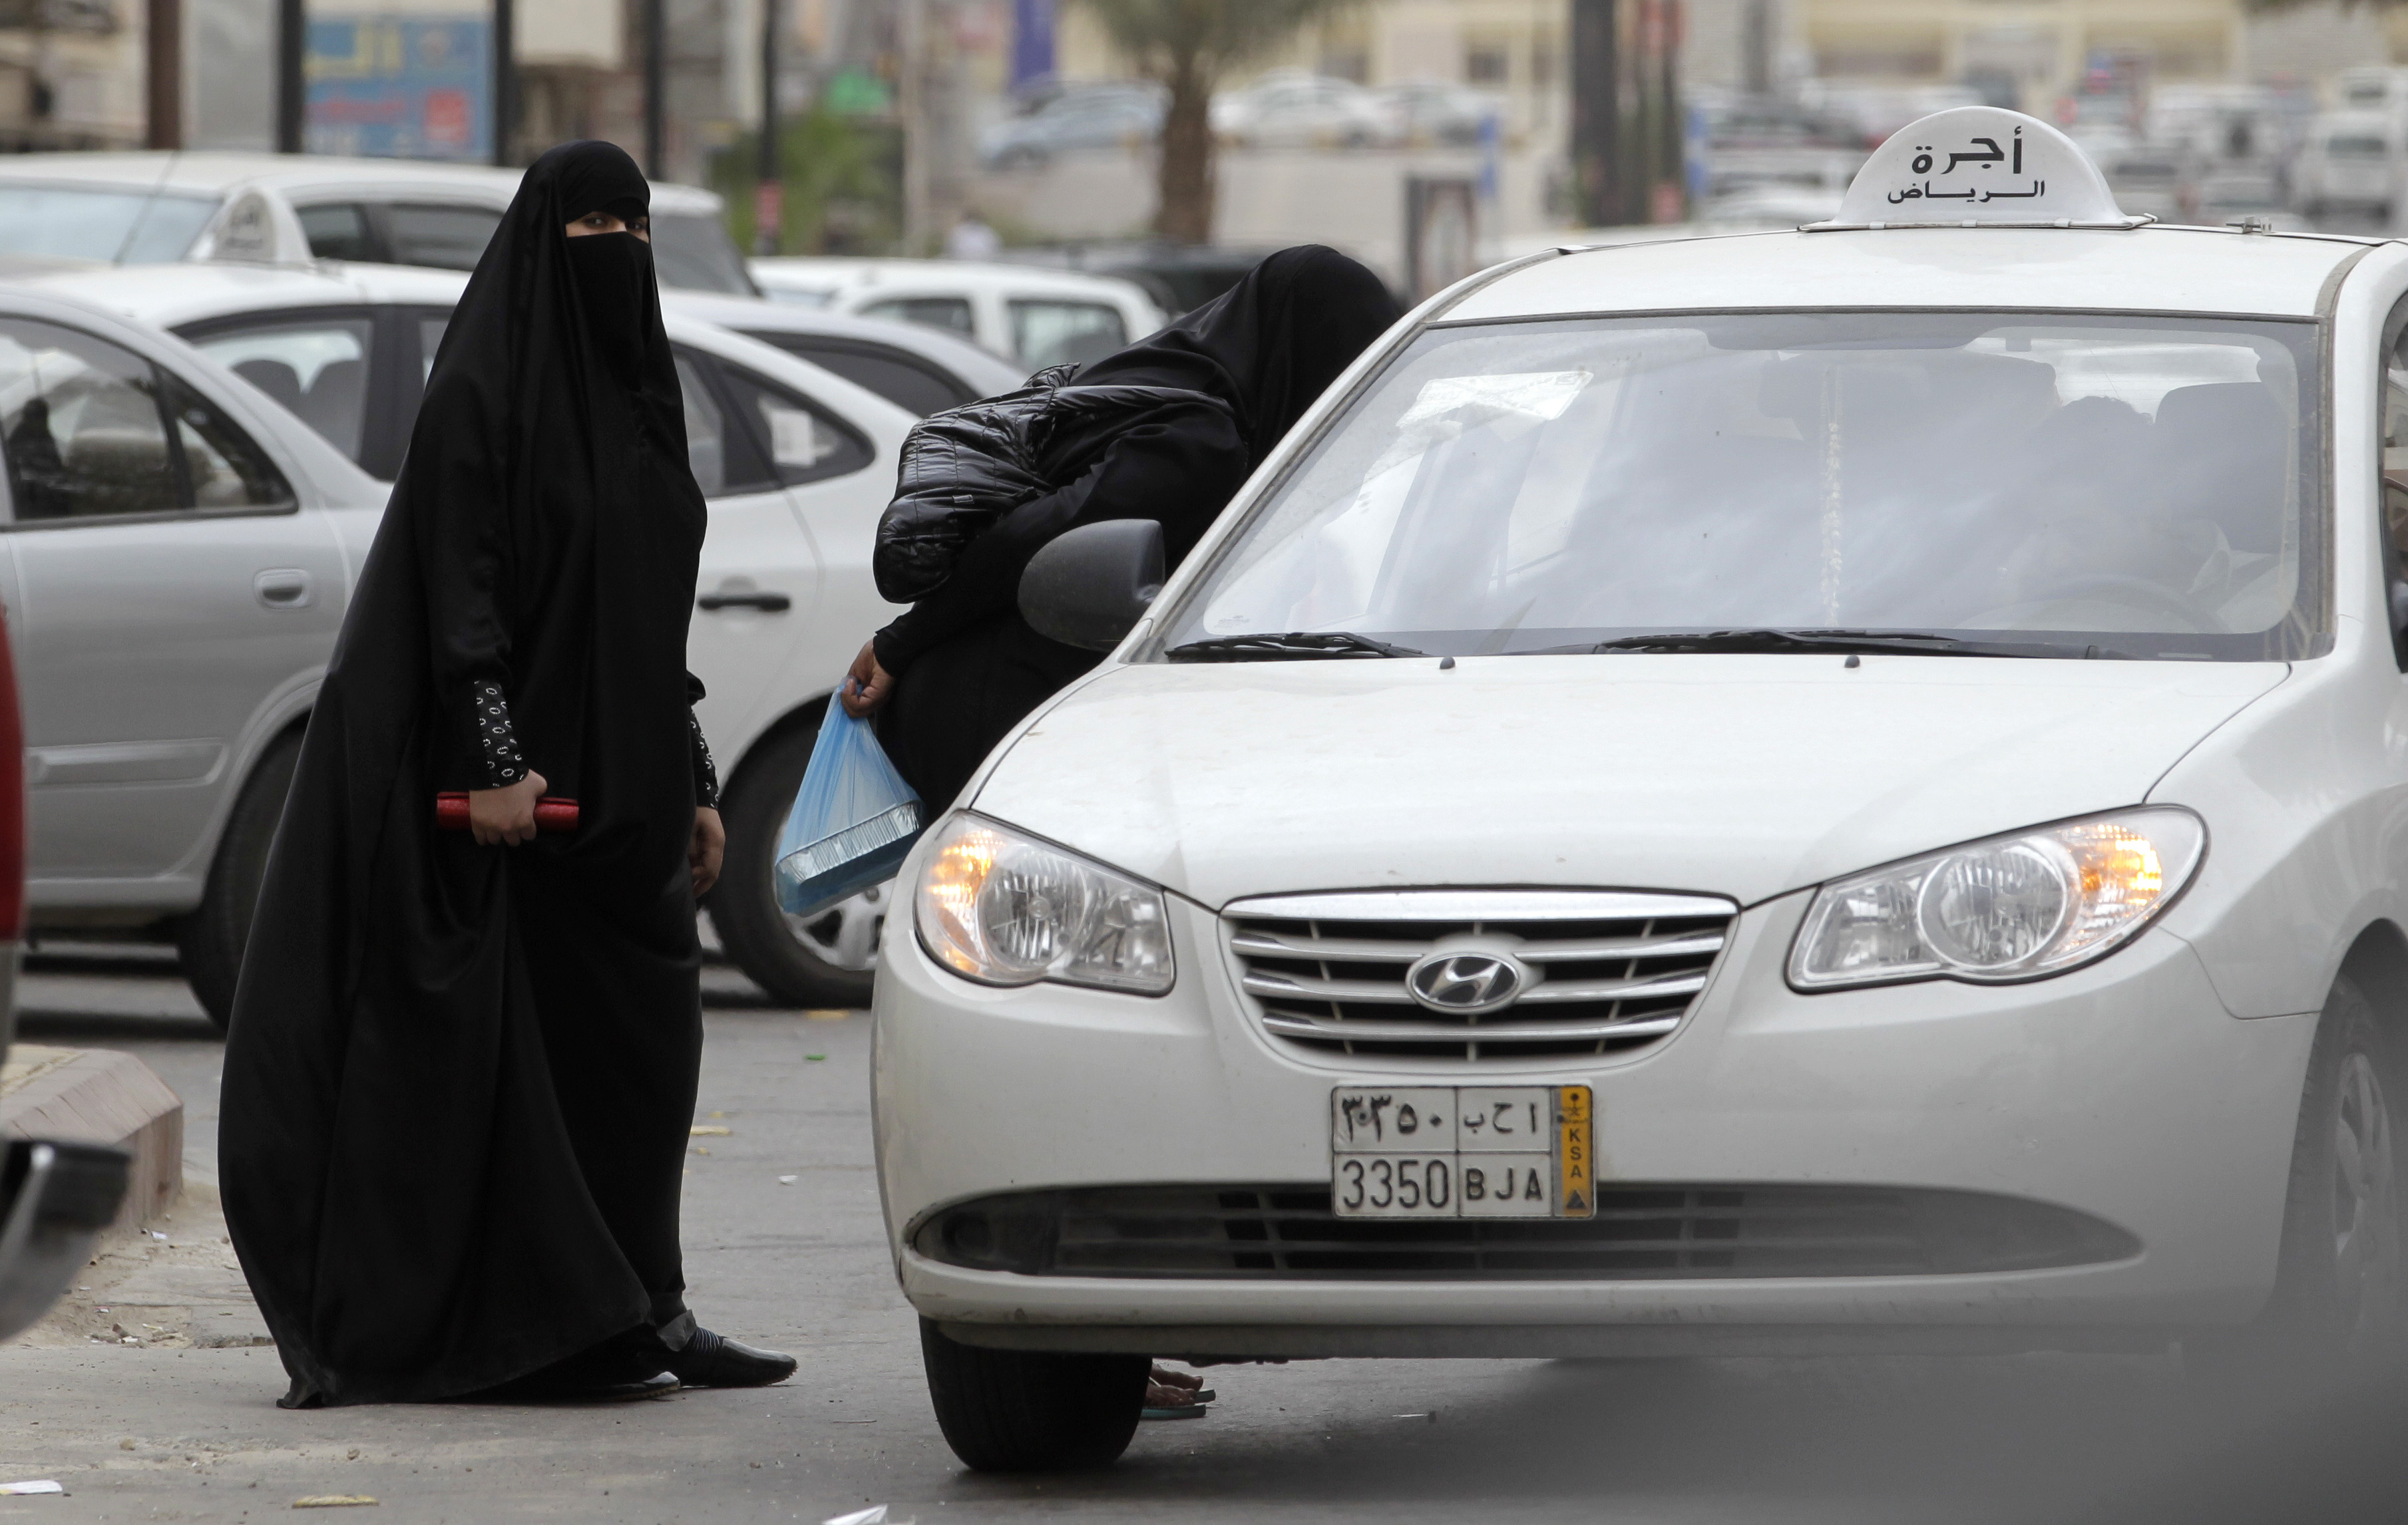 Saudi women will soon be able to drive. What about everything they can't do?